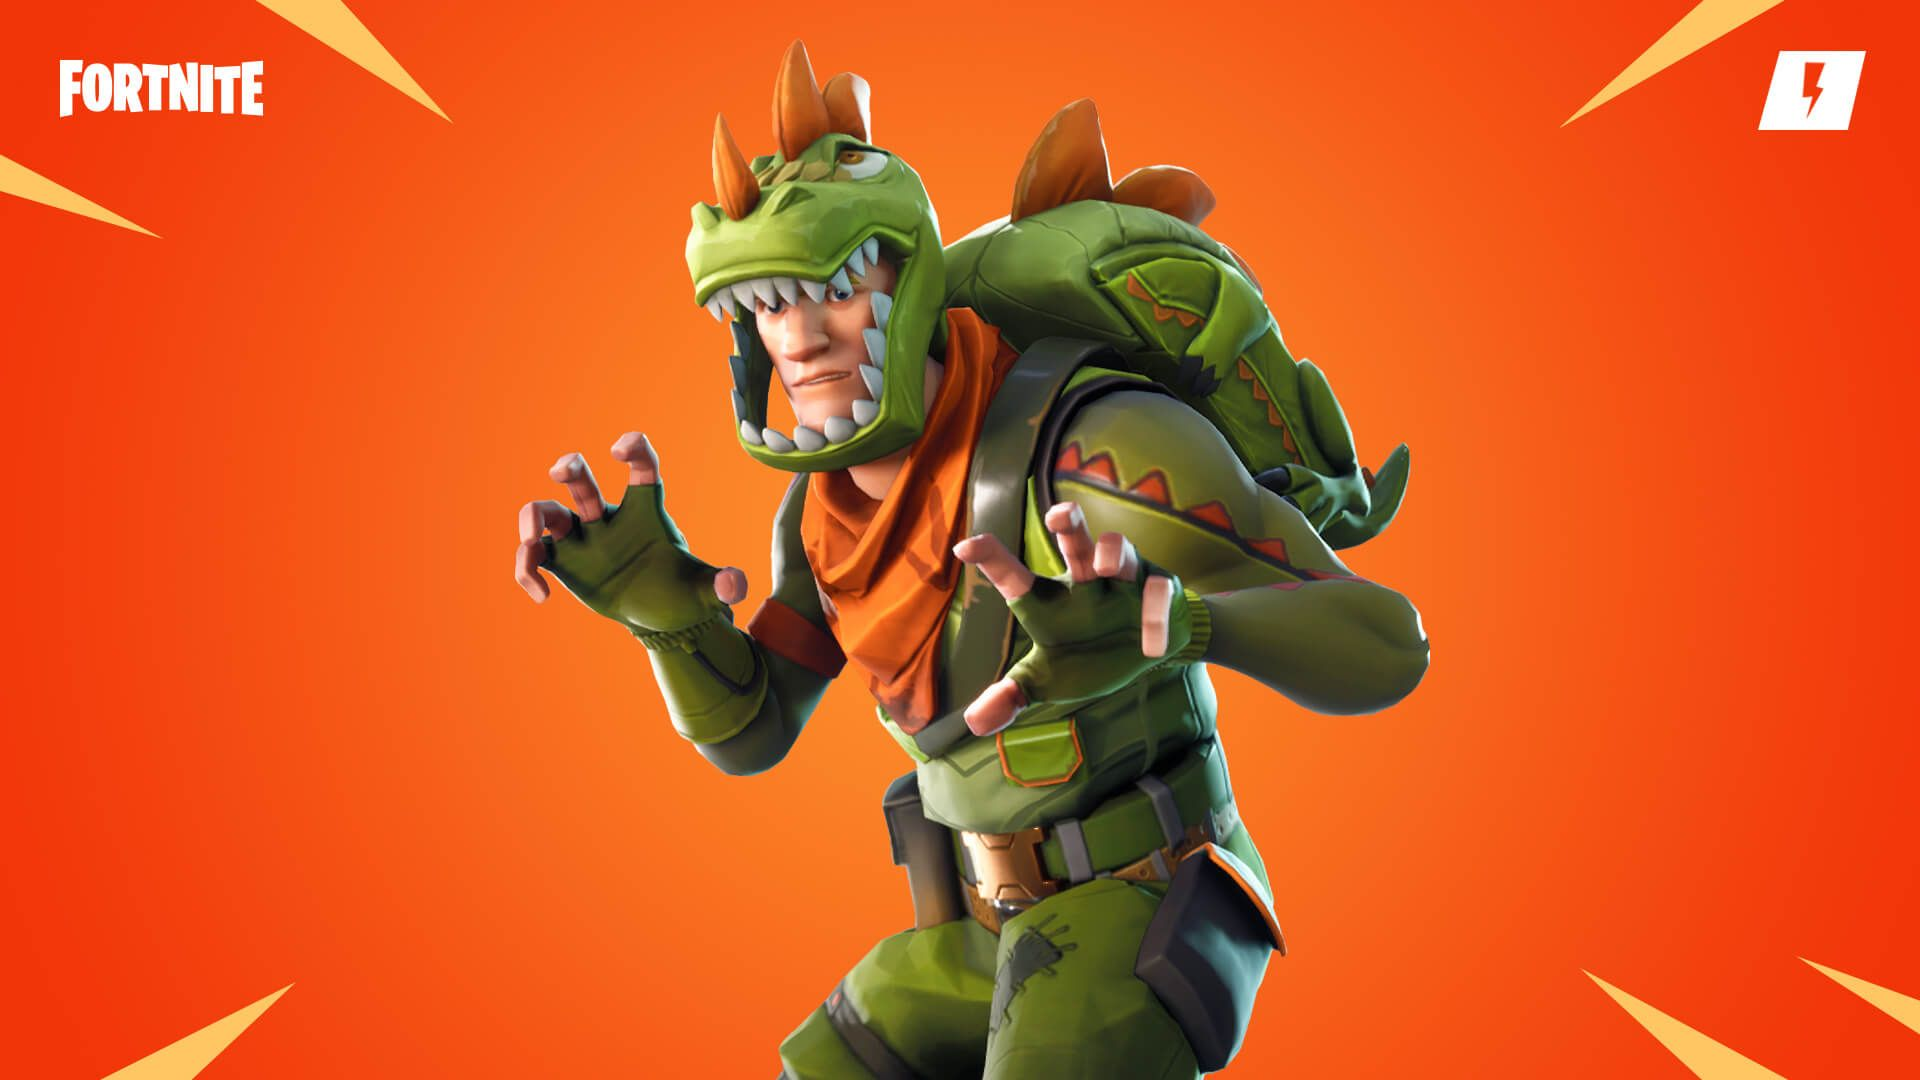 fortnite rex jonesy 910 patch notes